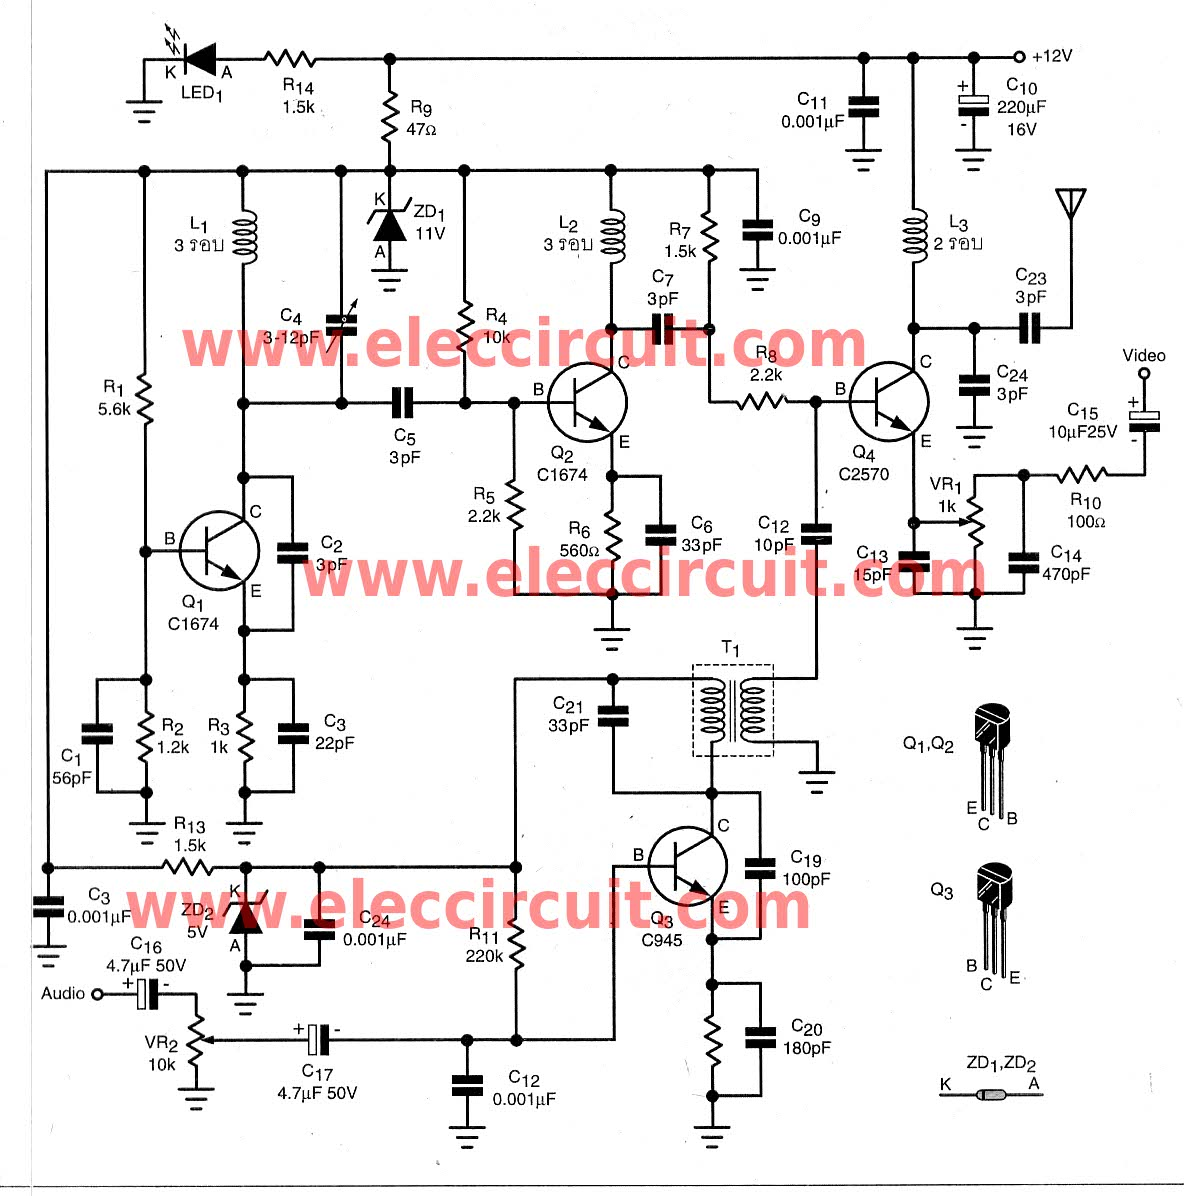 guitar wiring diagram generator 2007 gsxr 600 > circuits diy the wireless video audio signal sender circuit l40813 - next.gr